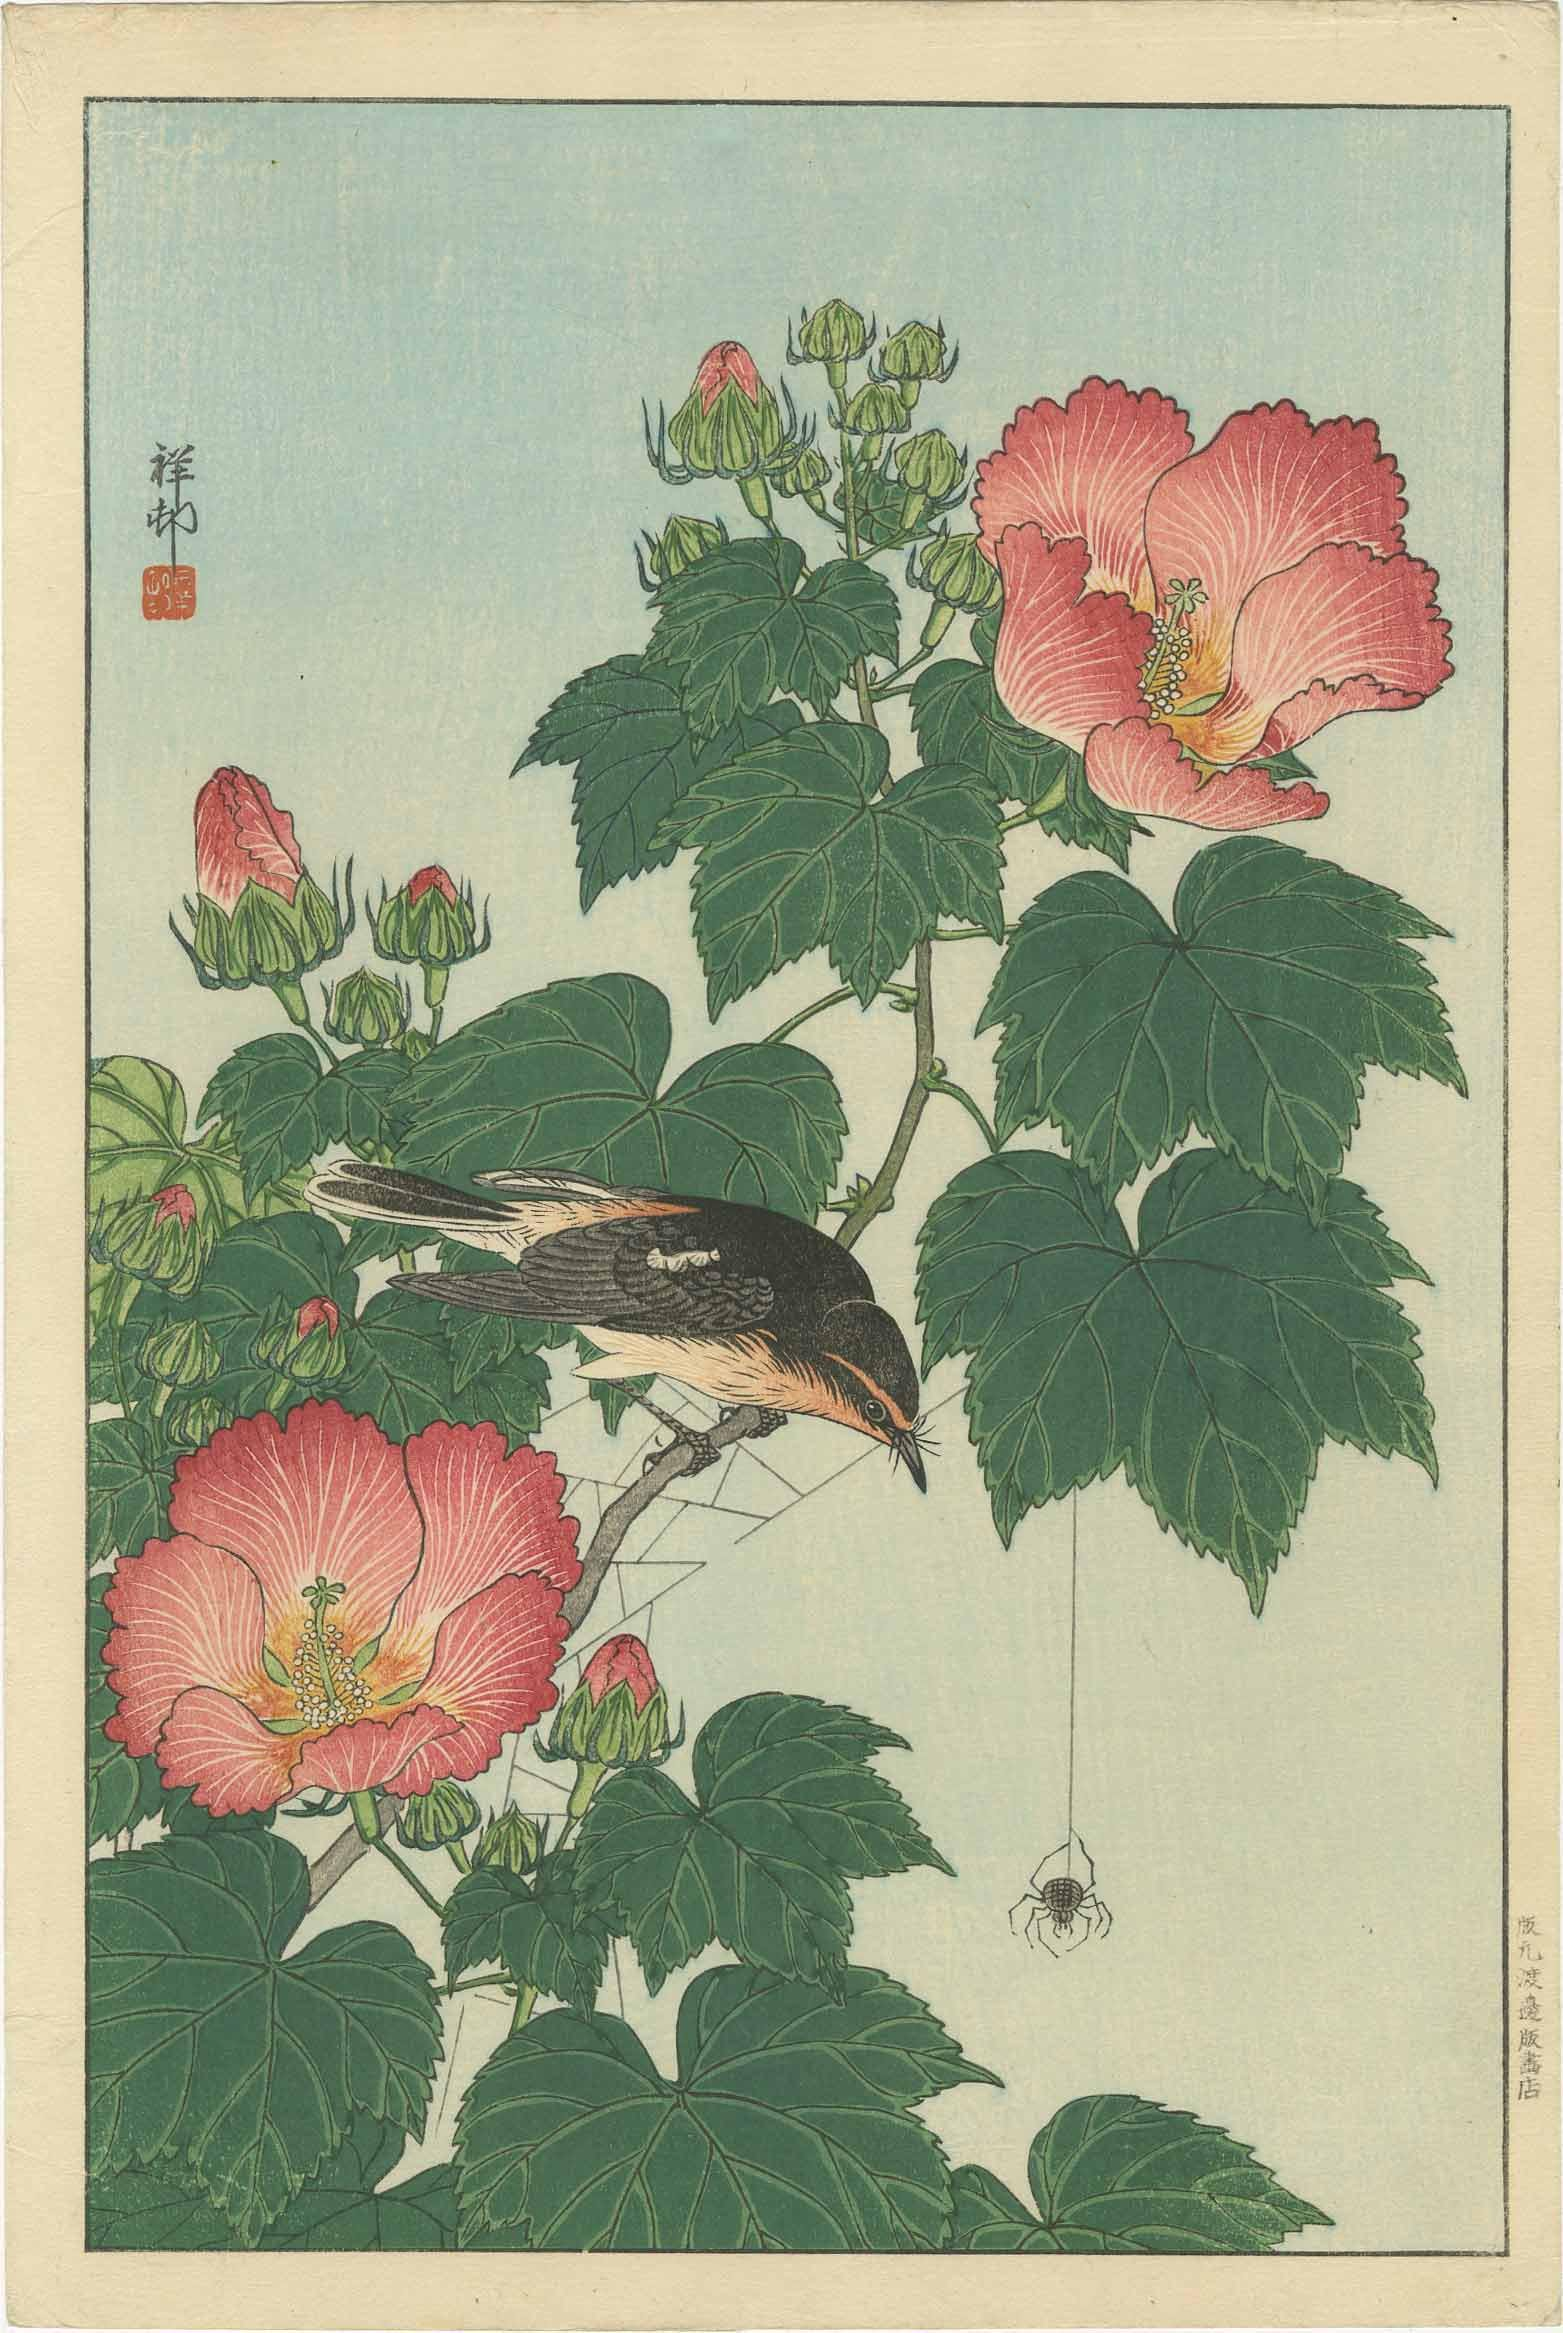 Ohara Koson - Fly-catcher and Spider 1932 woodblock